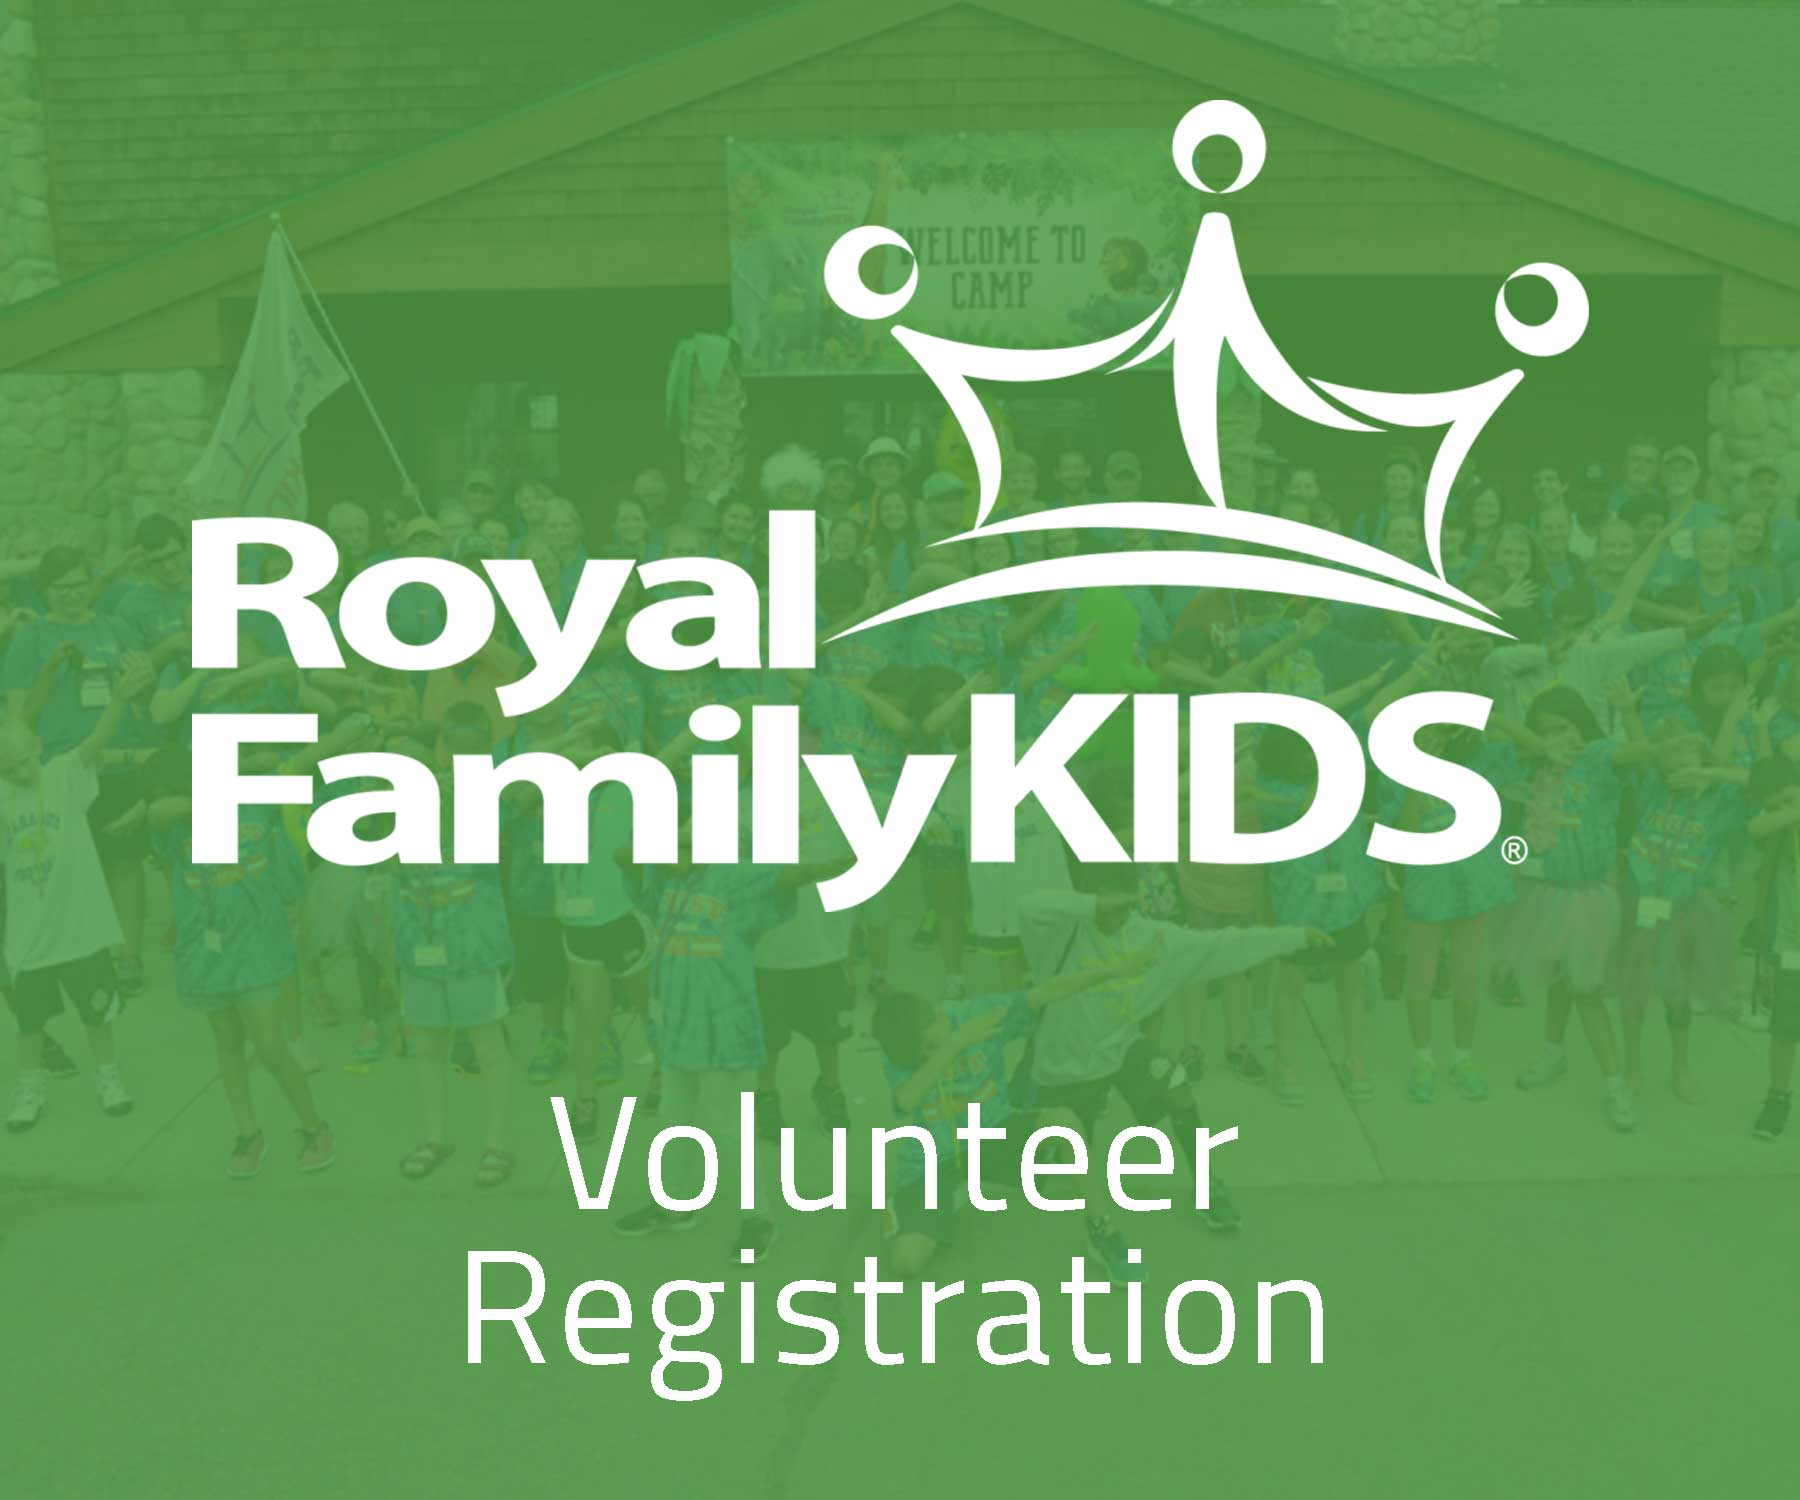 Royal family kids reg